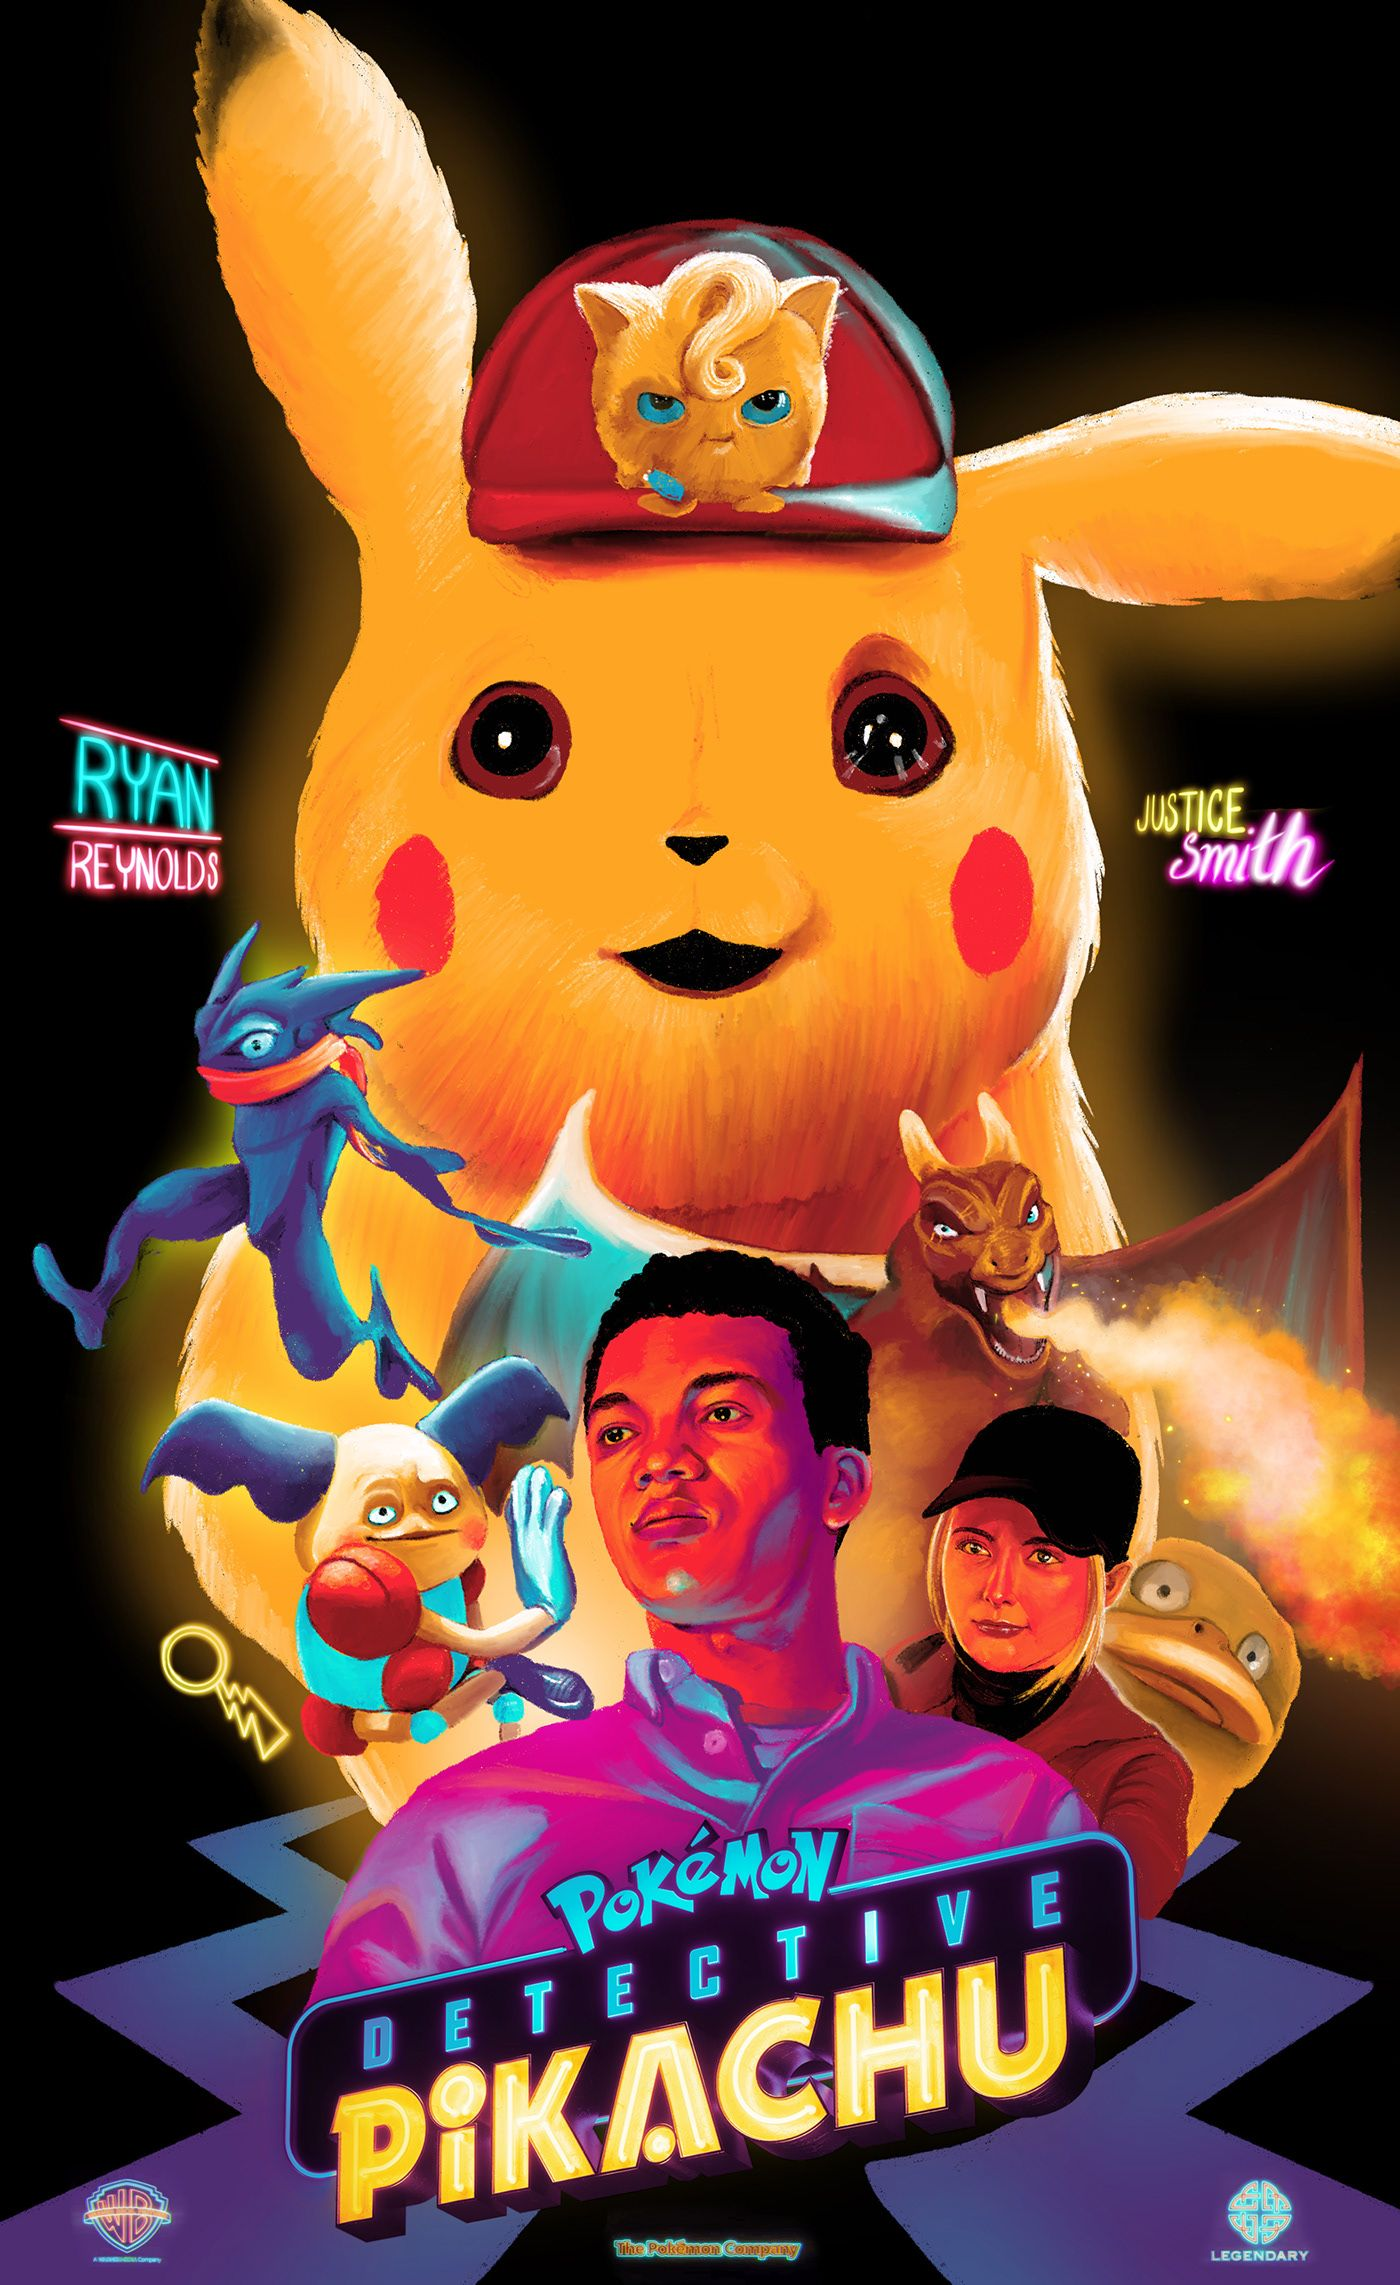 Behance Search Pikachu Pokemon Pokemon Movies